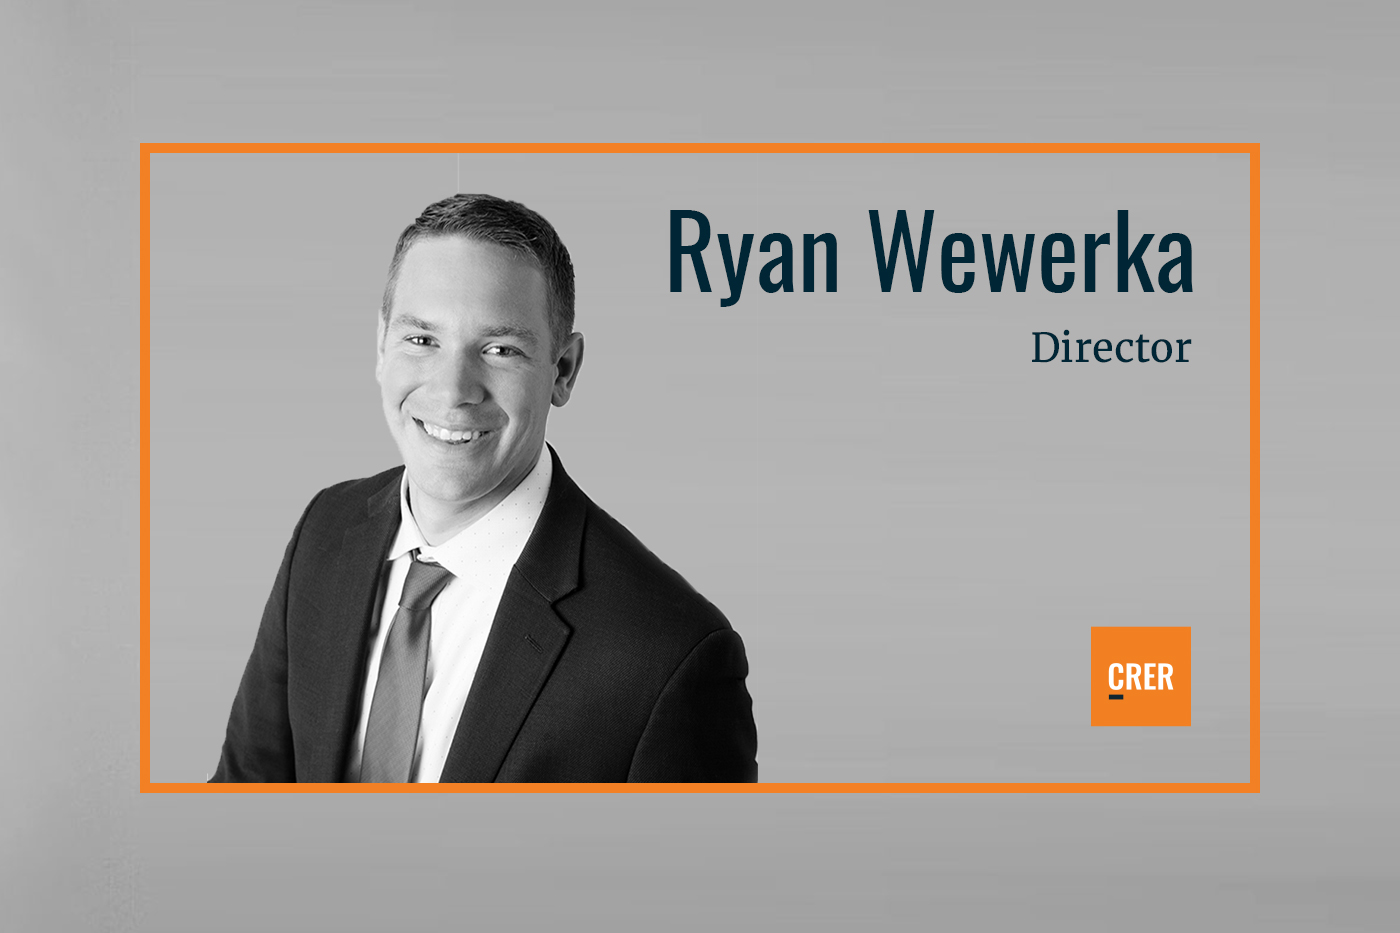 Ryan Wewerka Joins CRER